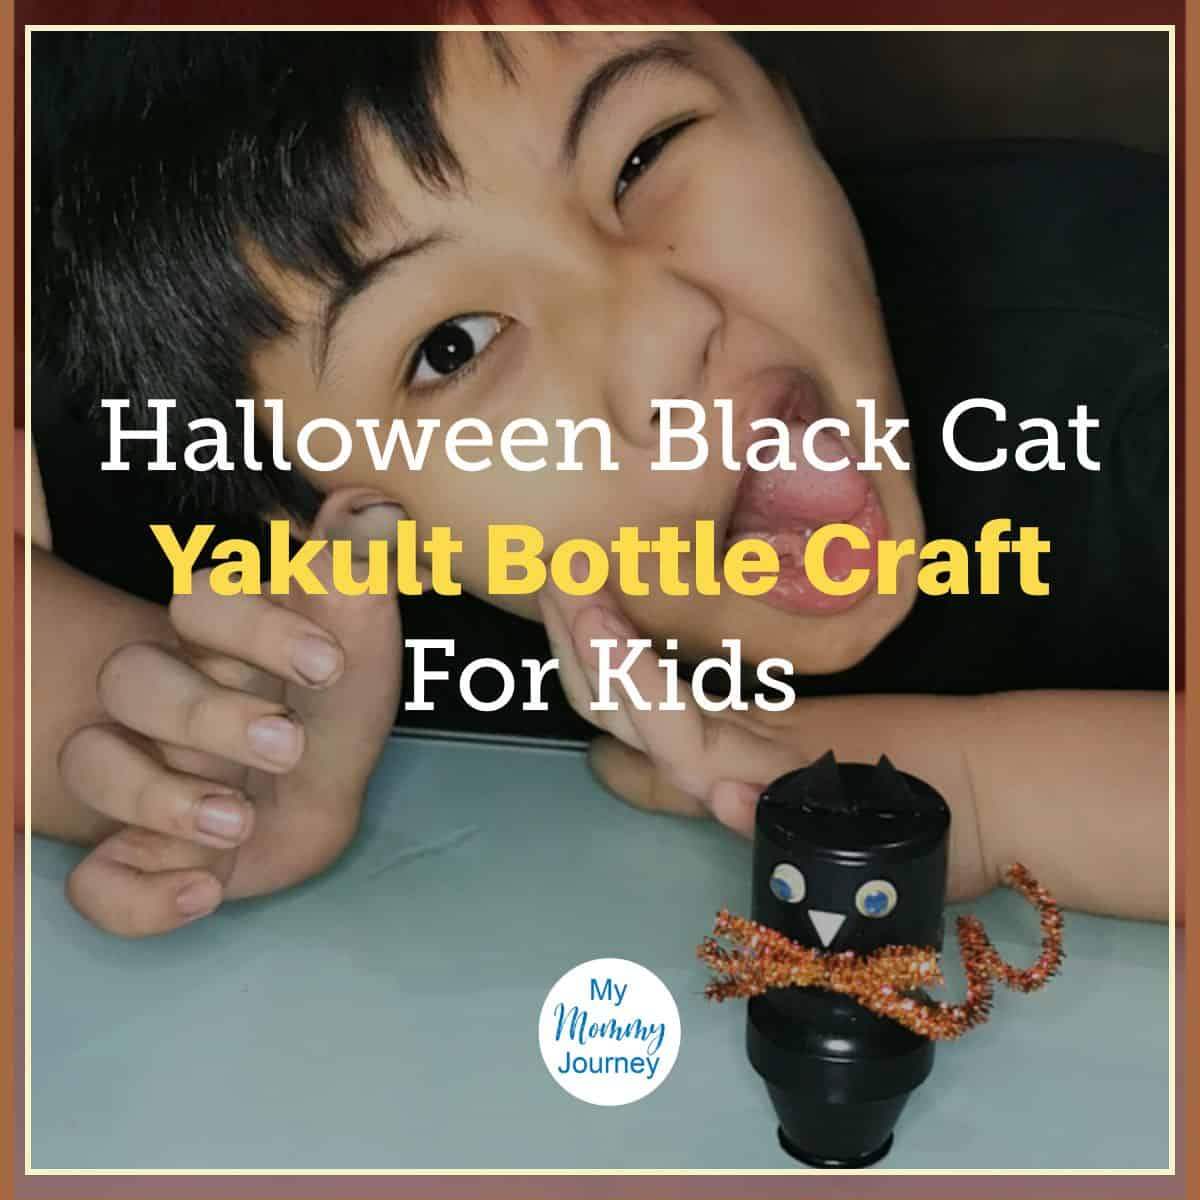 Halloween Black Cat Yakult Bottle Craft for Kids